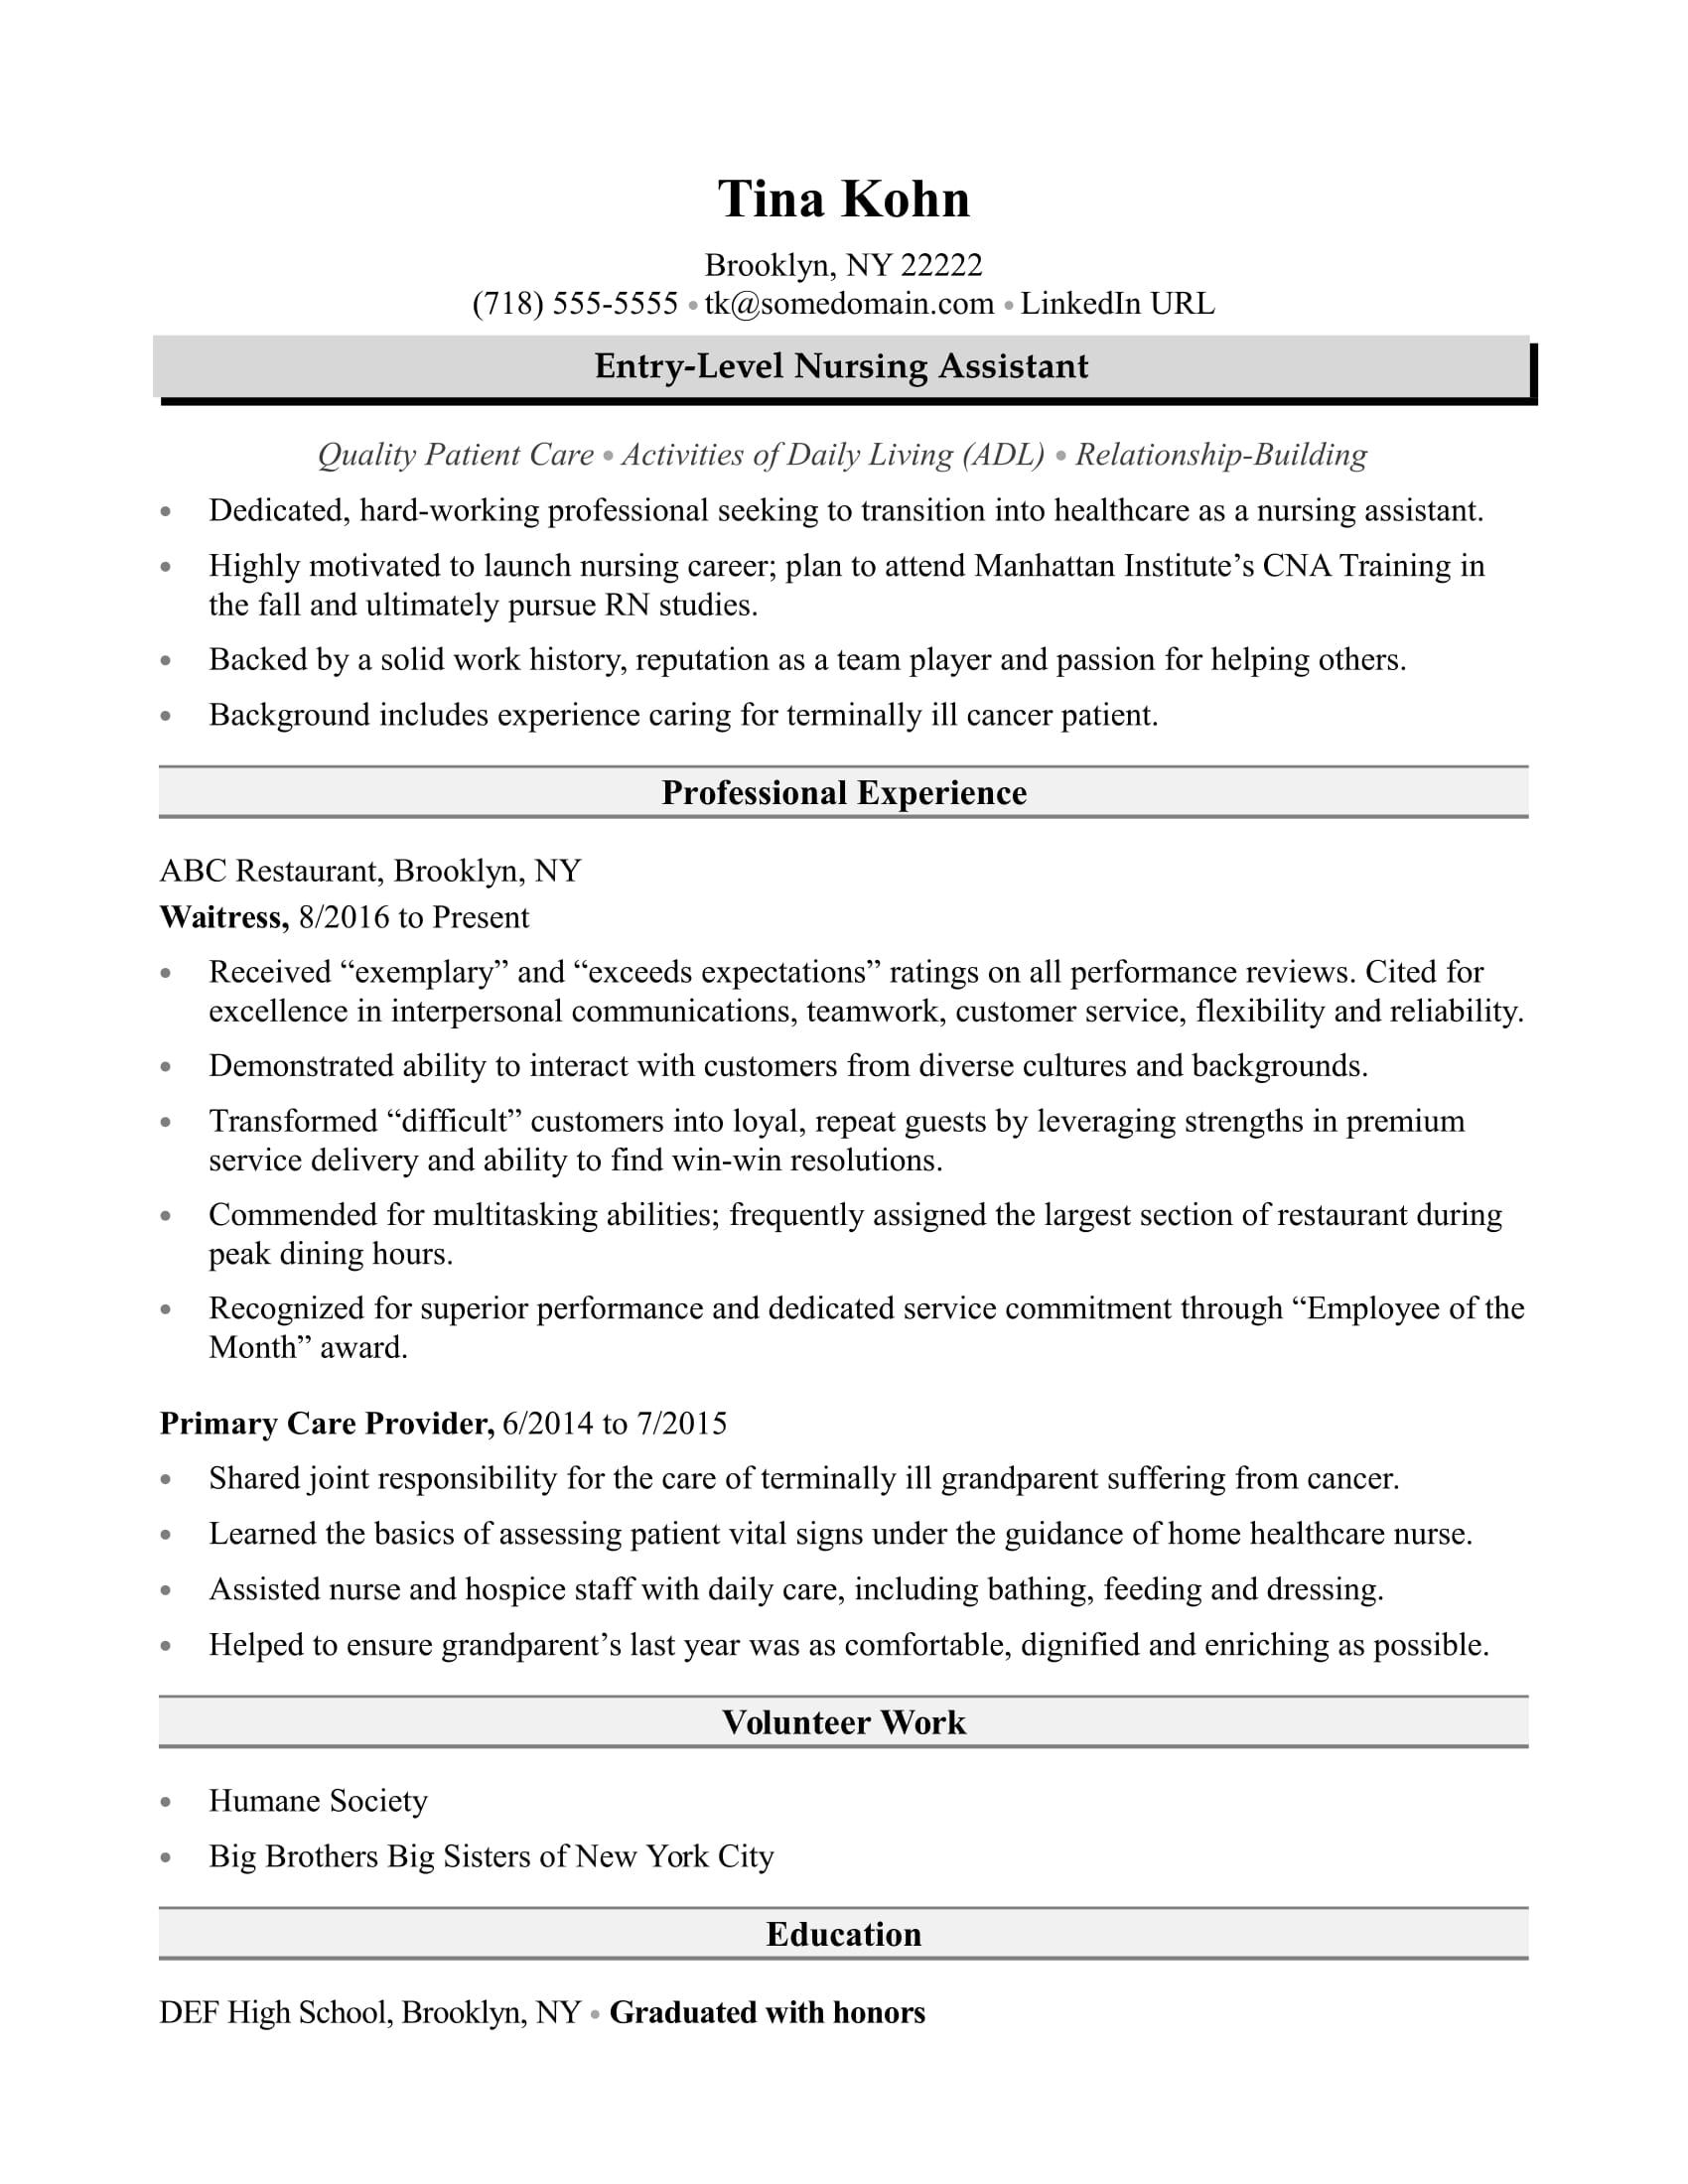 ain aged care resume sample